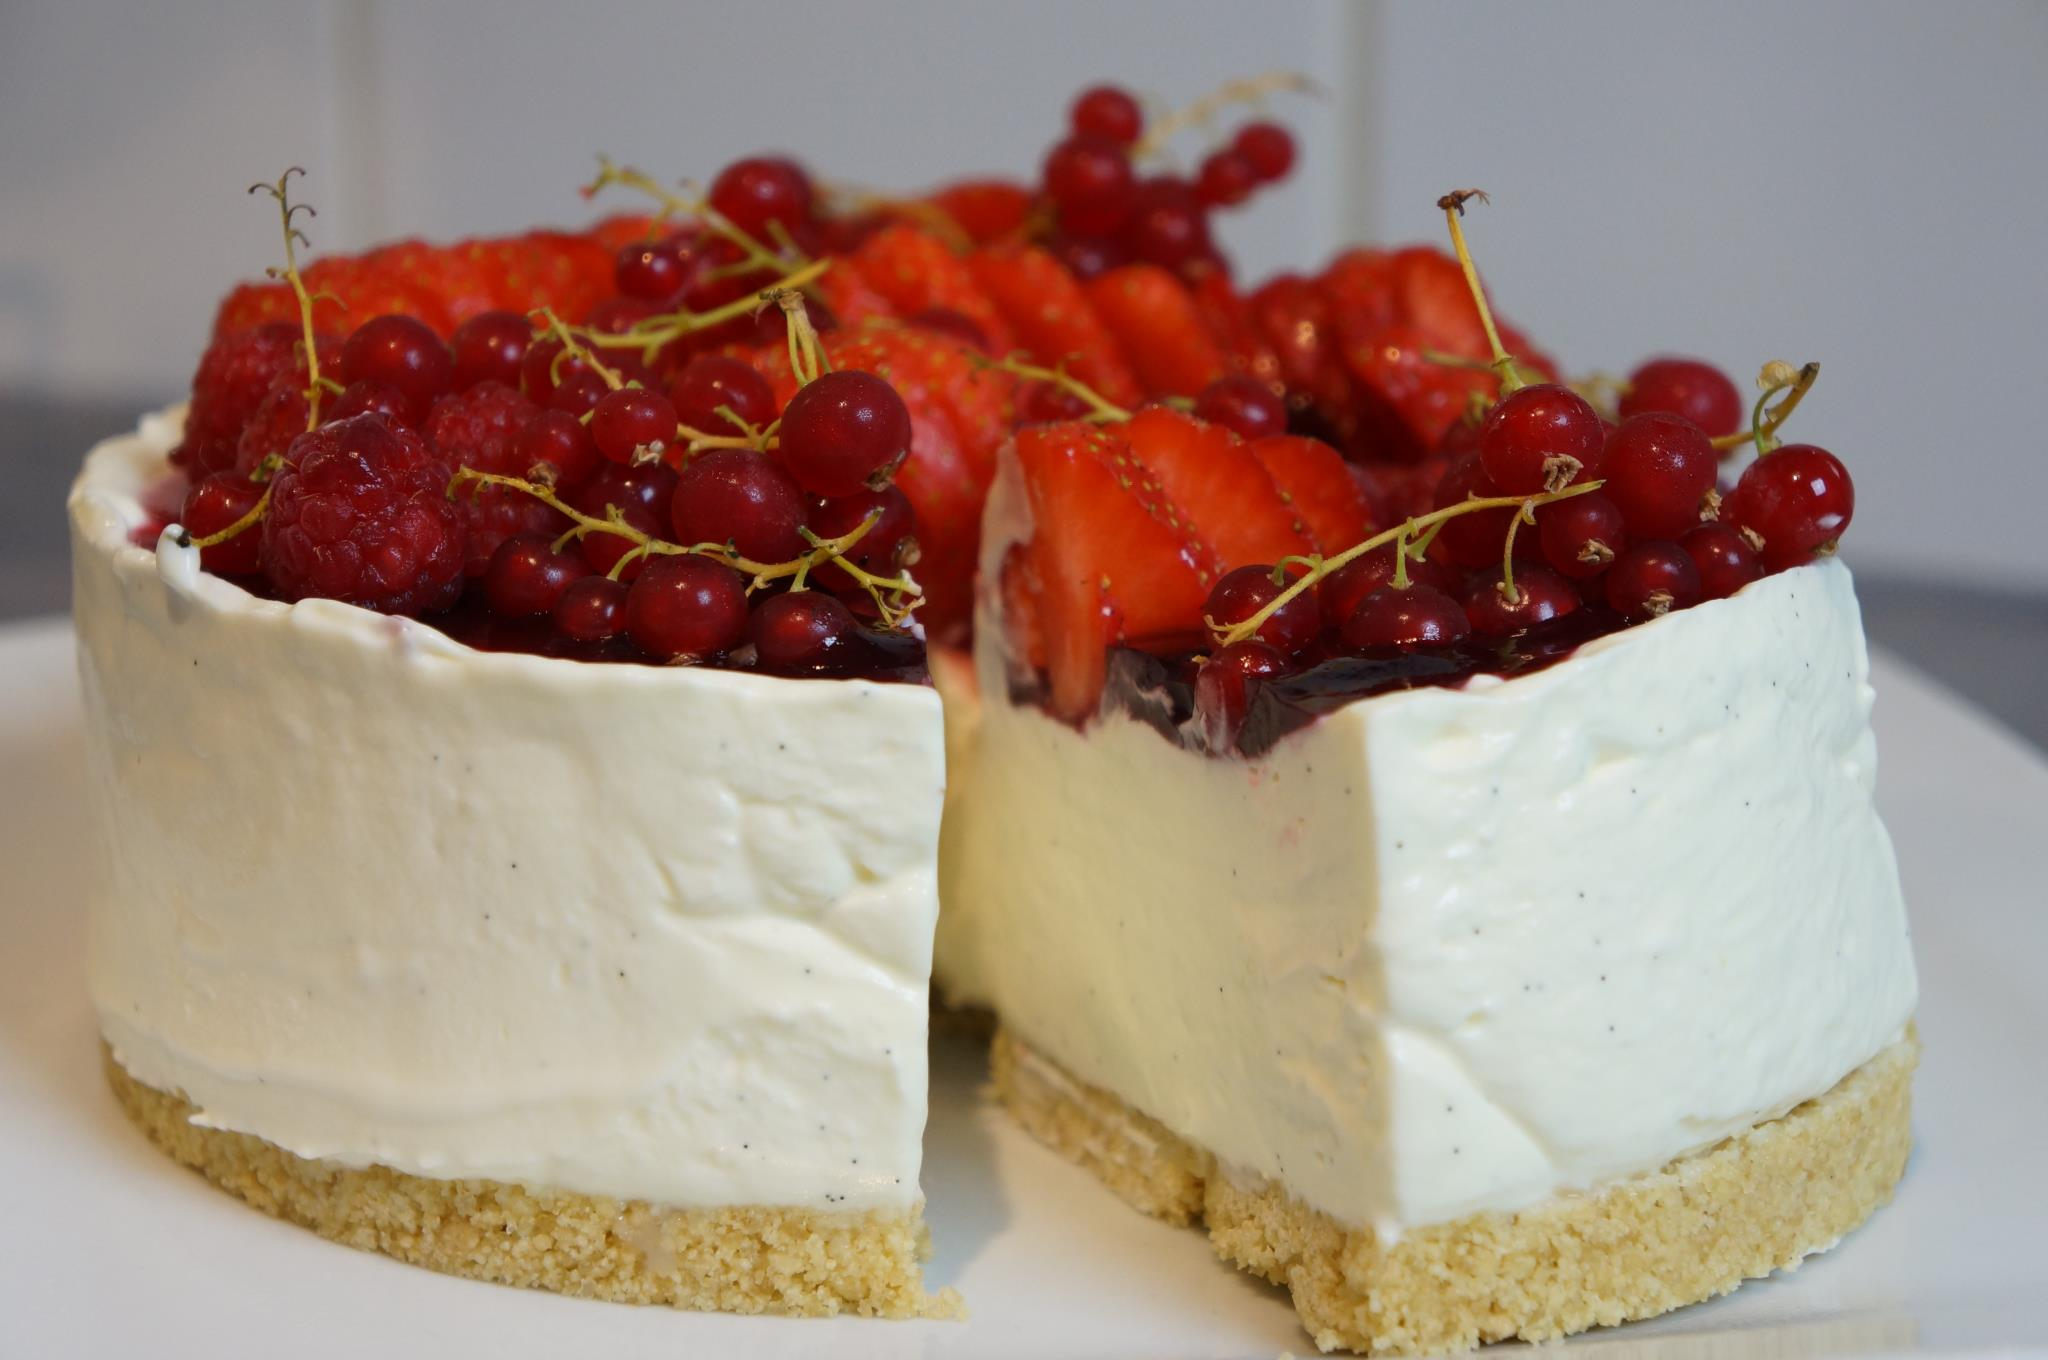 Cheesecake sans cuisson vanille fruits rouges - Gateau au mascarpone sans cuisson ...